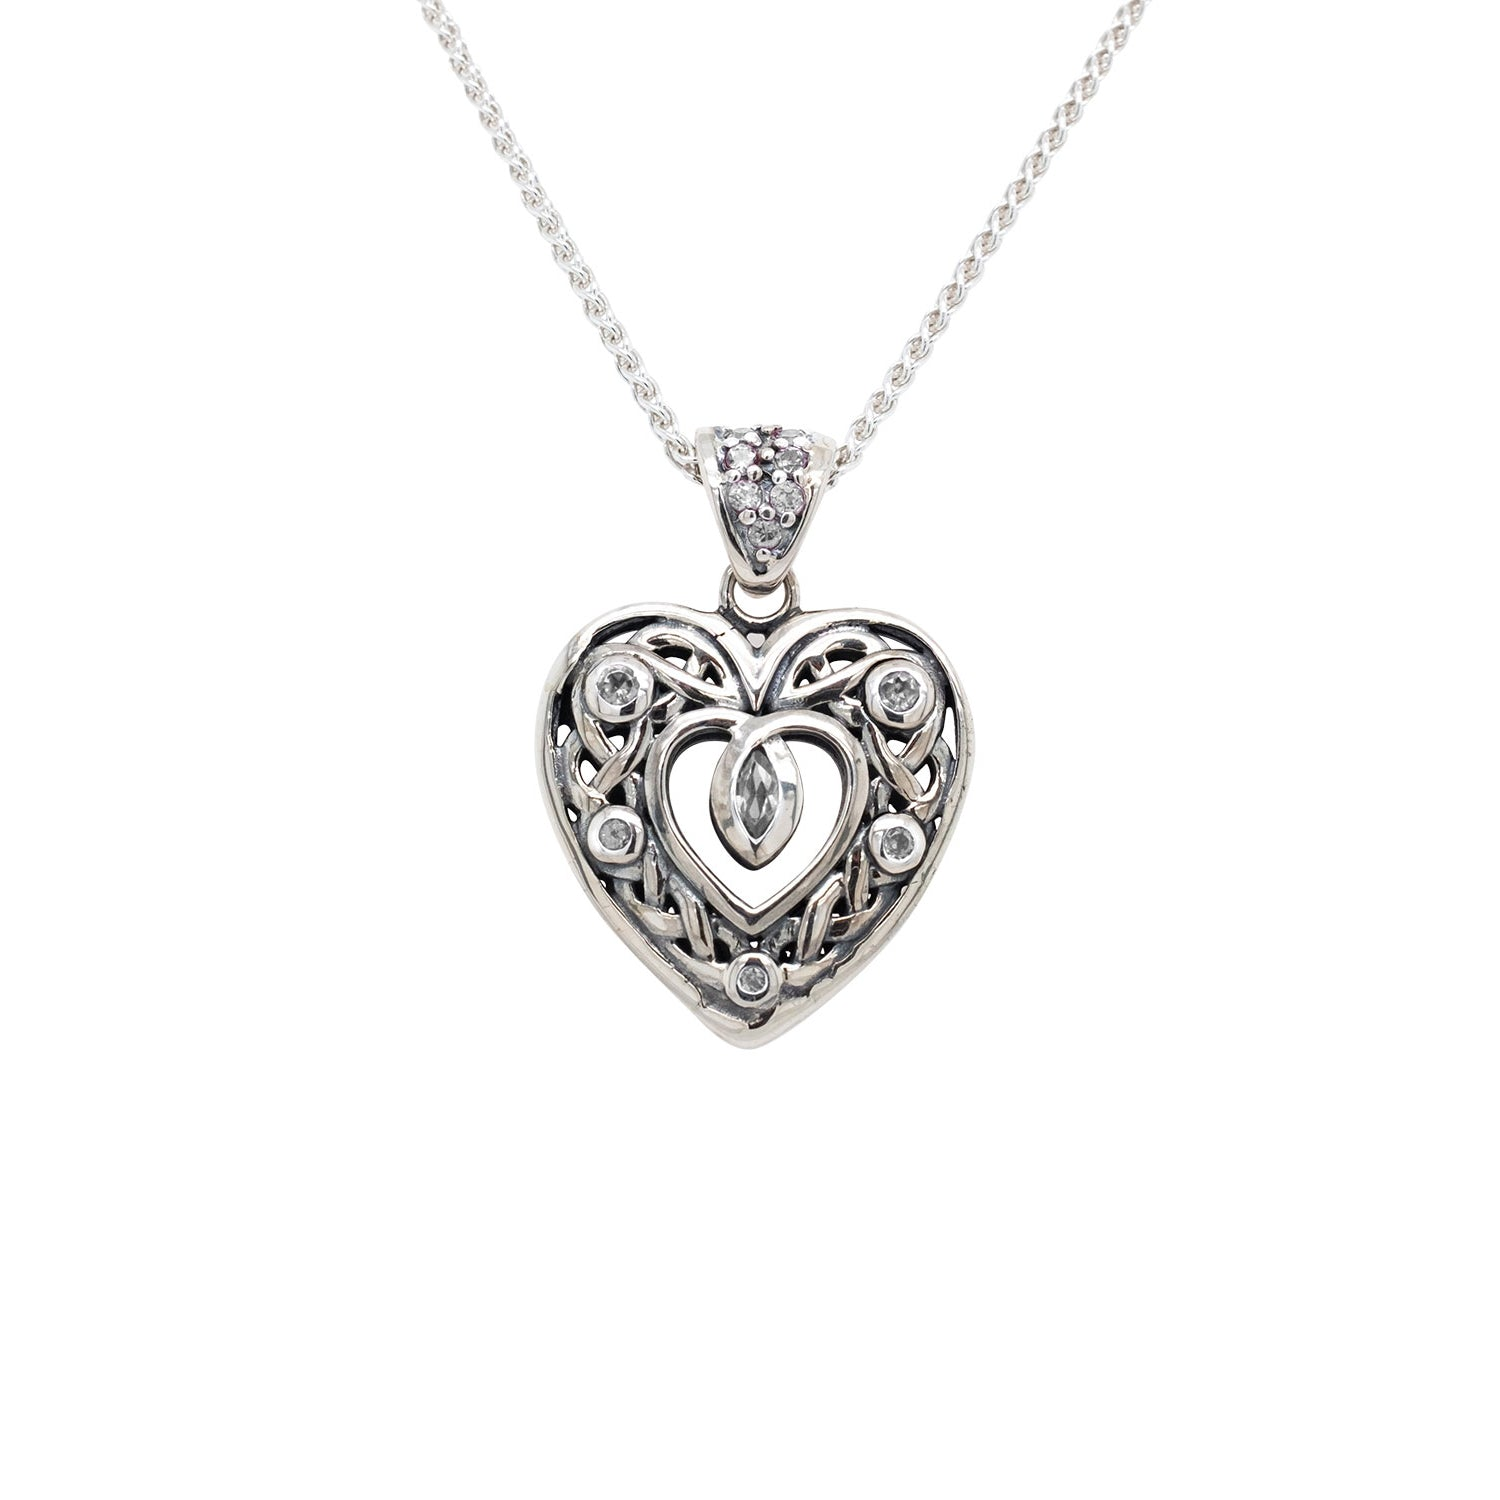 Pendant Double Sided Celtic Open Heart Small CZ Pendant from welch and company jewelers near syracuse ny